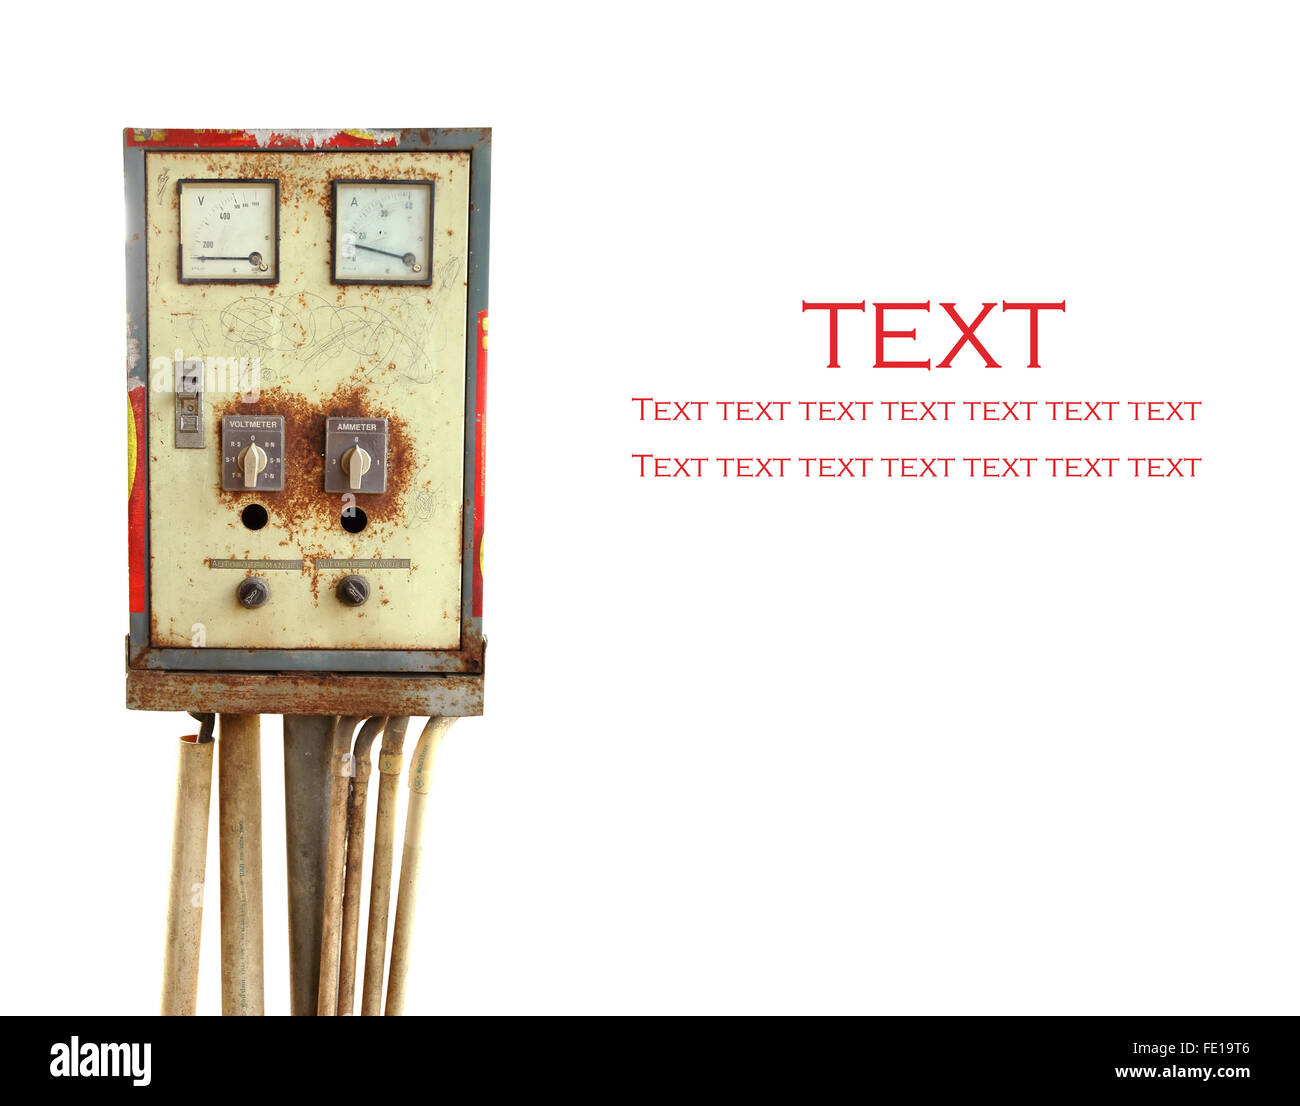 Ammeter Stock Photos Images Alamy Amp Meter Circuit Control Panel Isolated Image